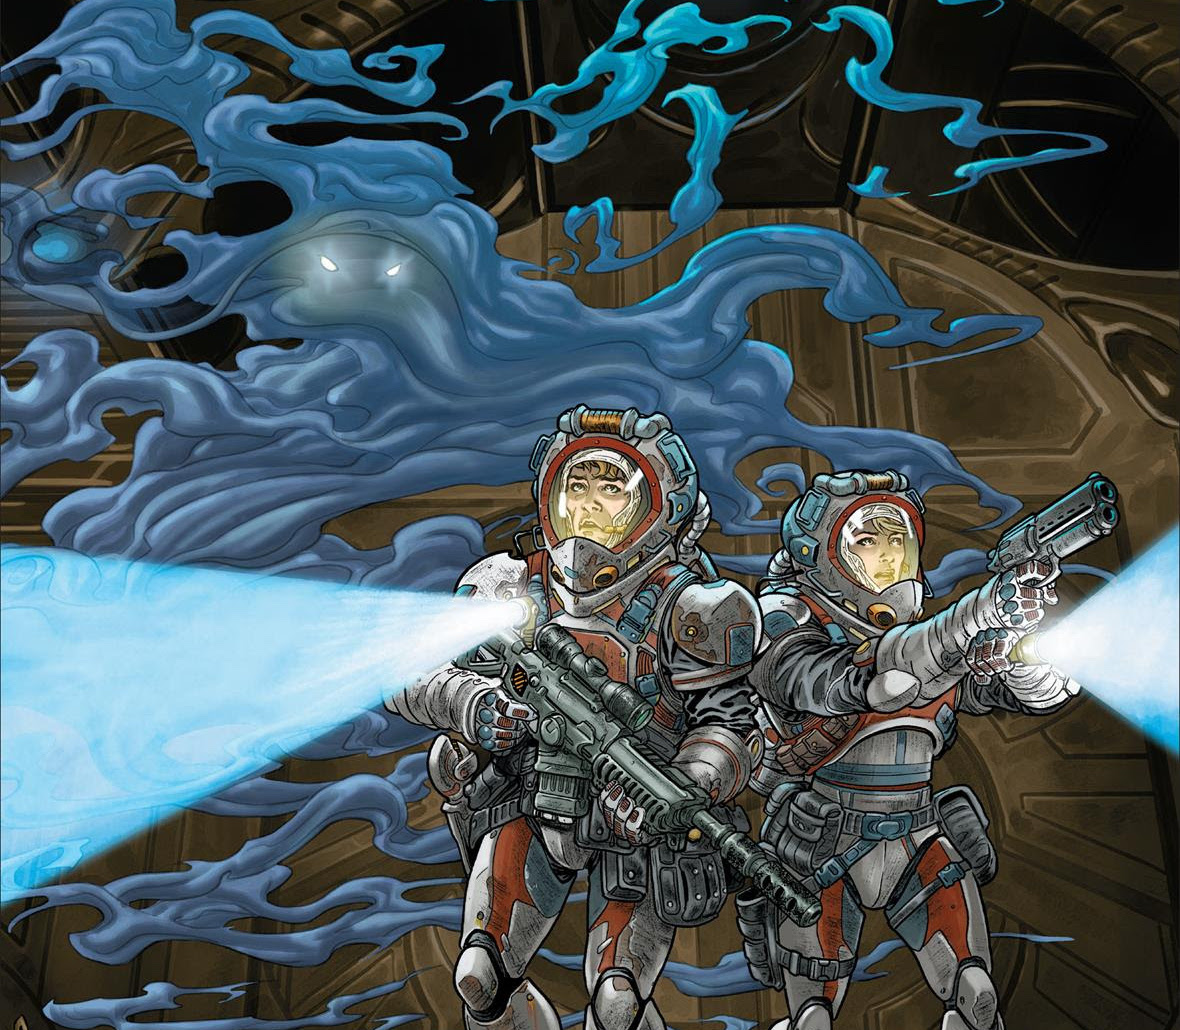 Explore the 'Starcraft' universe in new comic miniseries from Dark Horse and Blizzard Entertainment